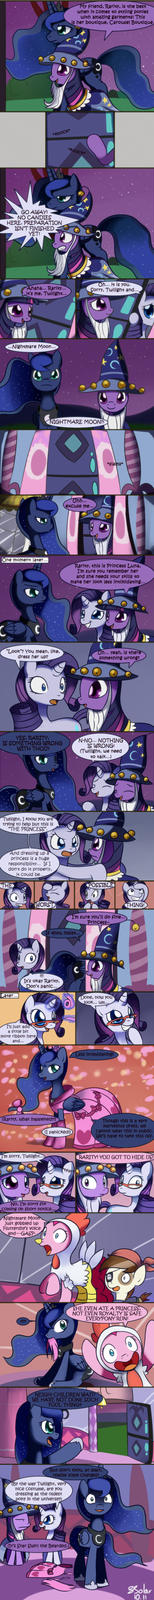 nightmare_night___rarity_by_solar_slash-d4egez8.jpg